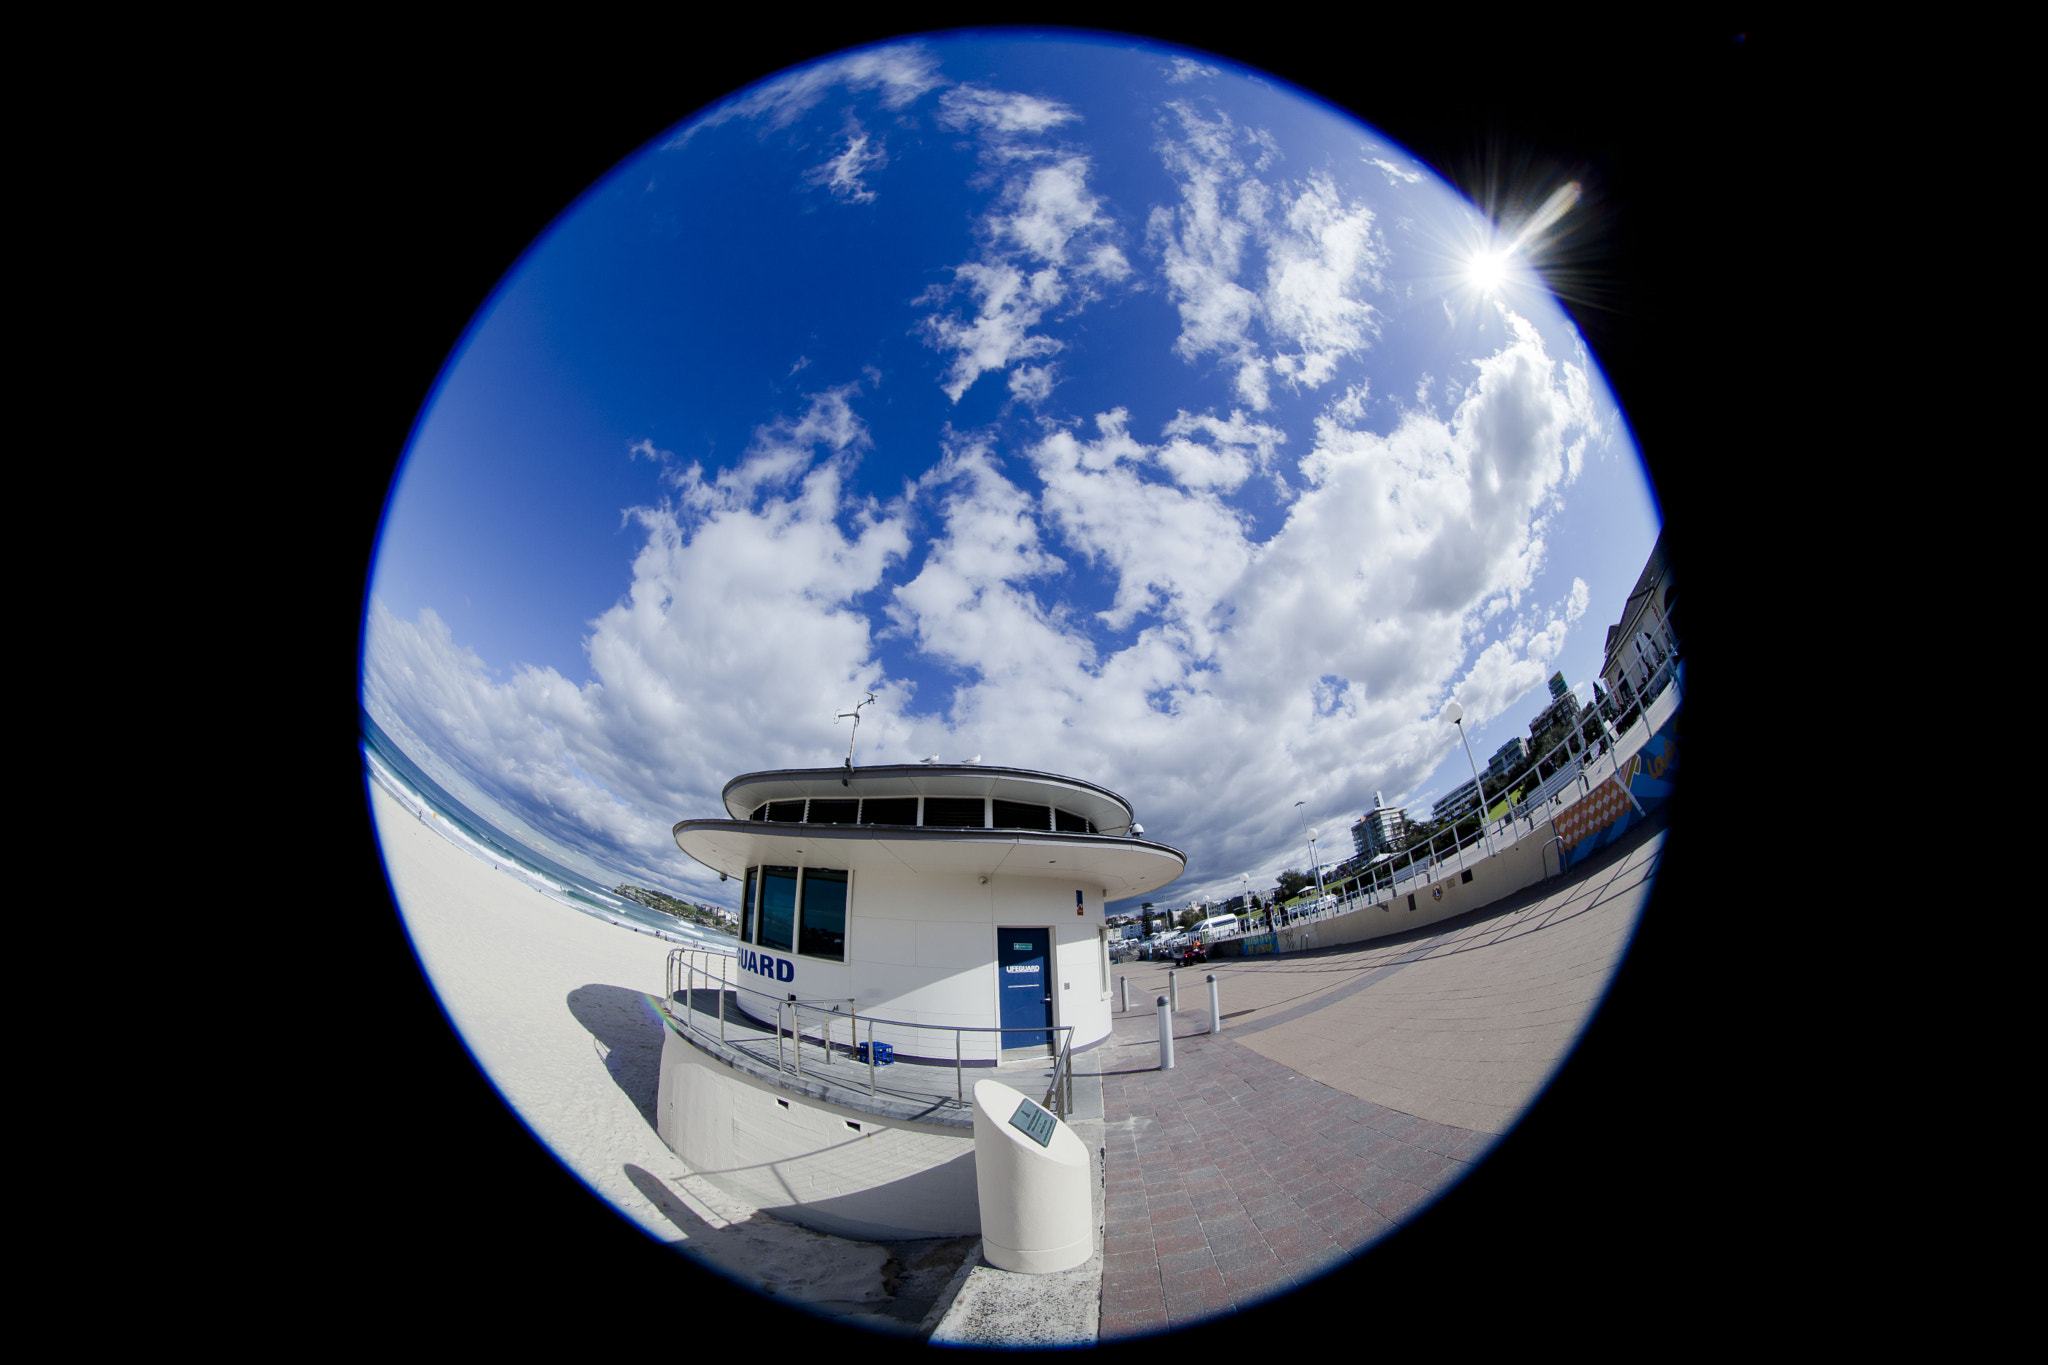 Photograph Bondi Lifeguard Tower by James P Guiney on 500px